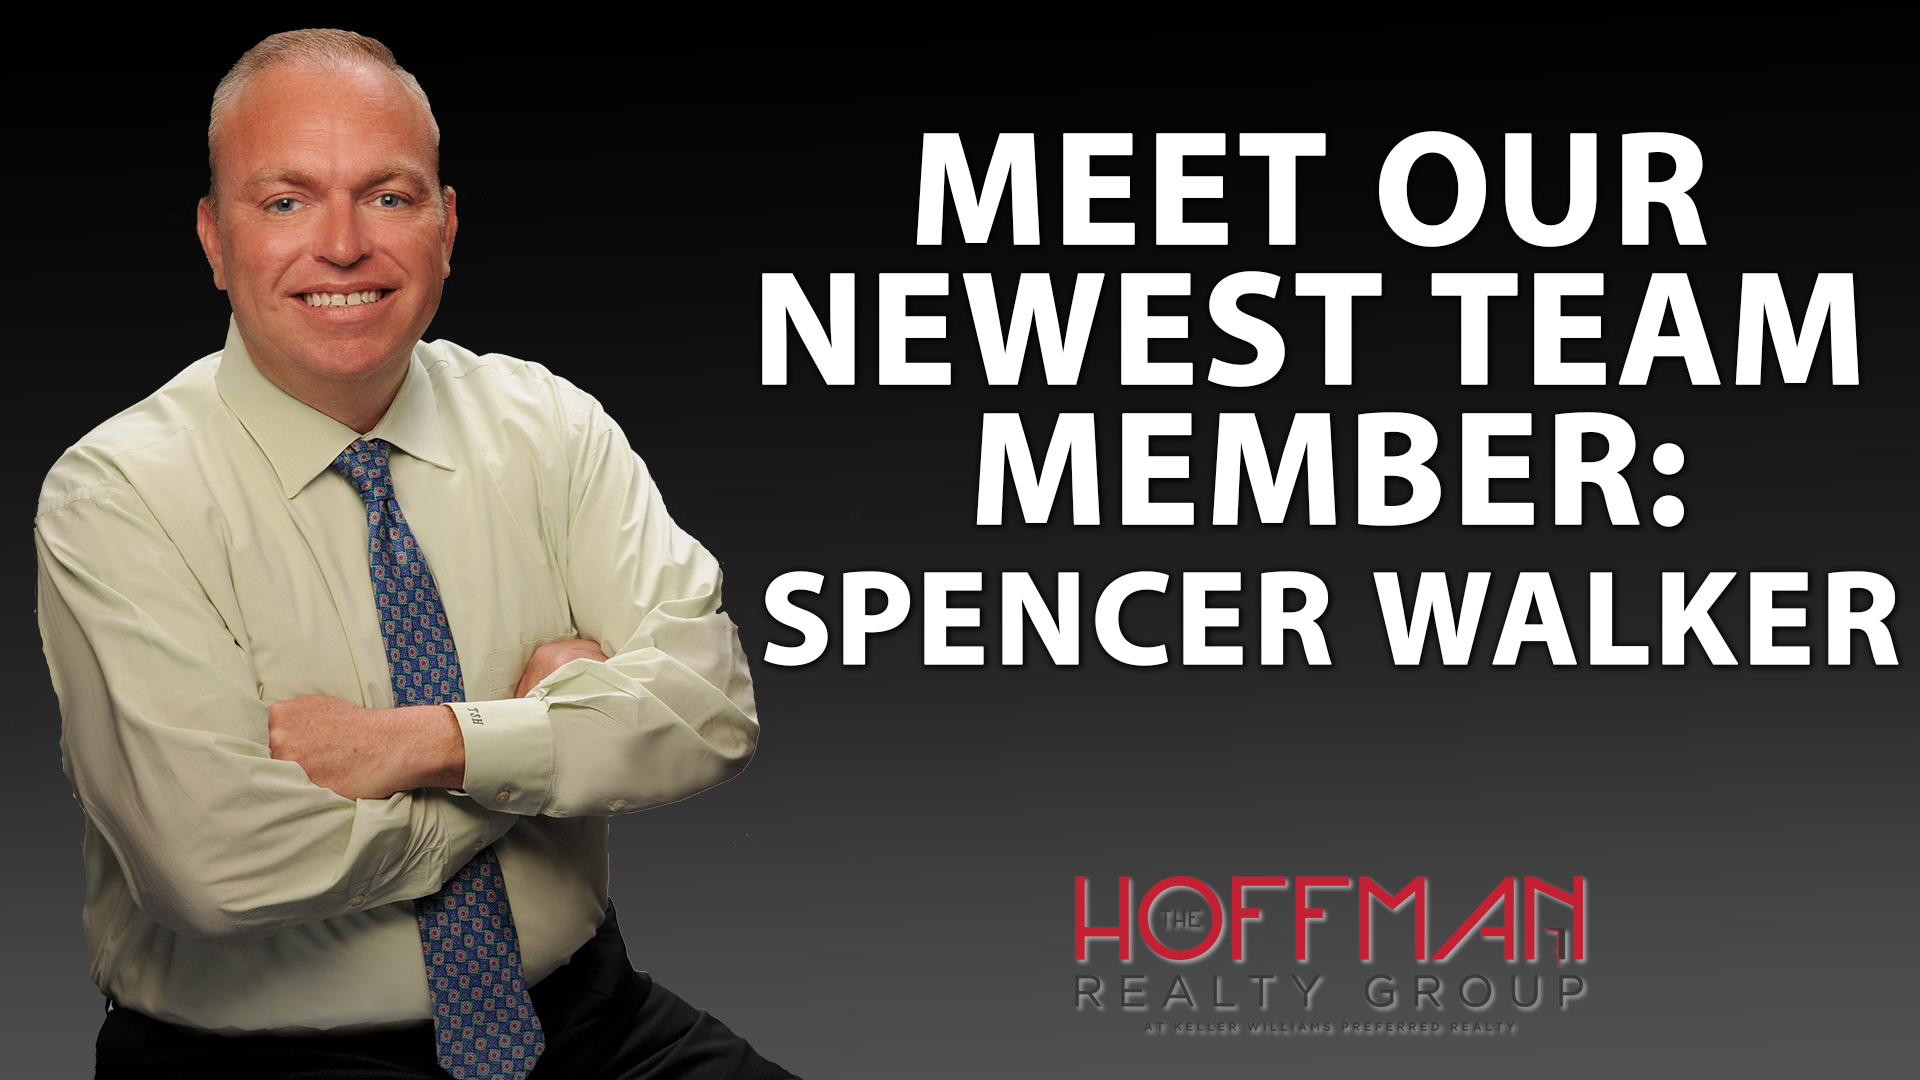 Introducing the Newest Member of Hoffman Realty Group